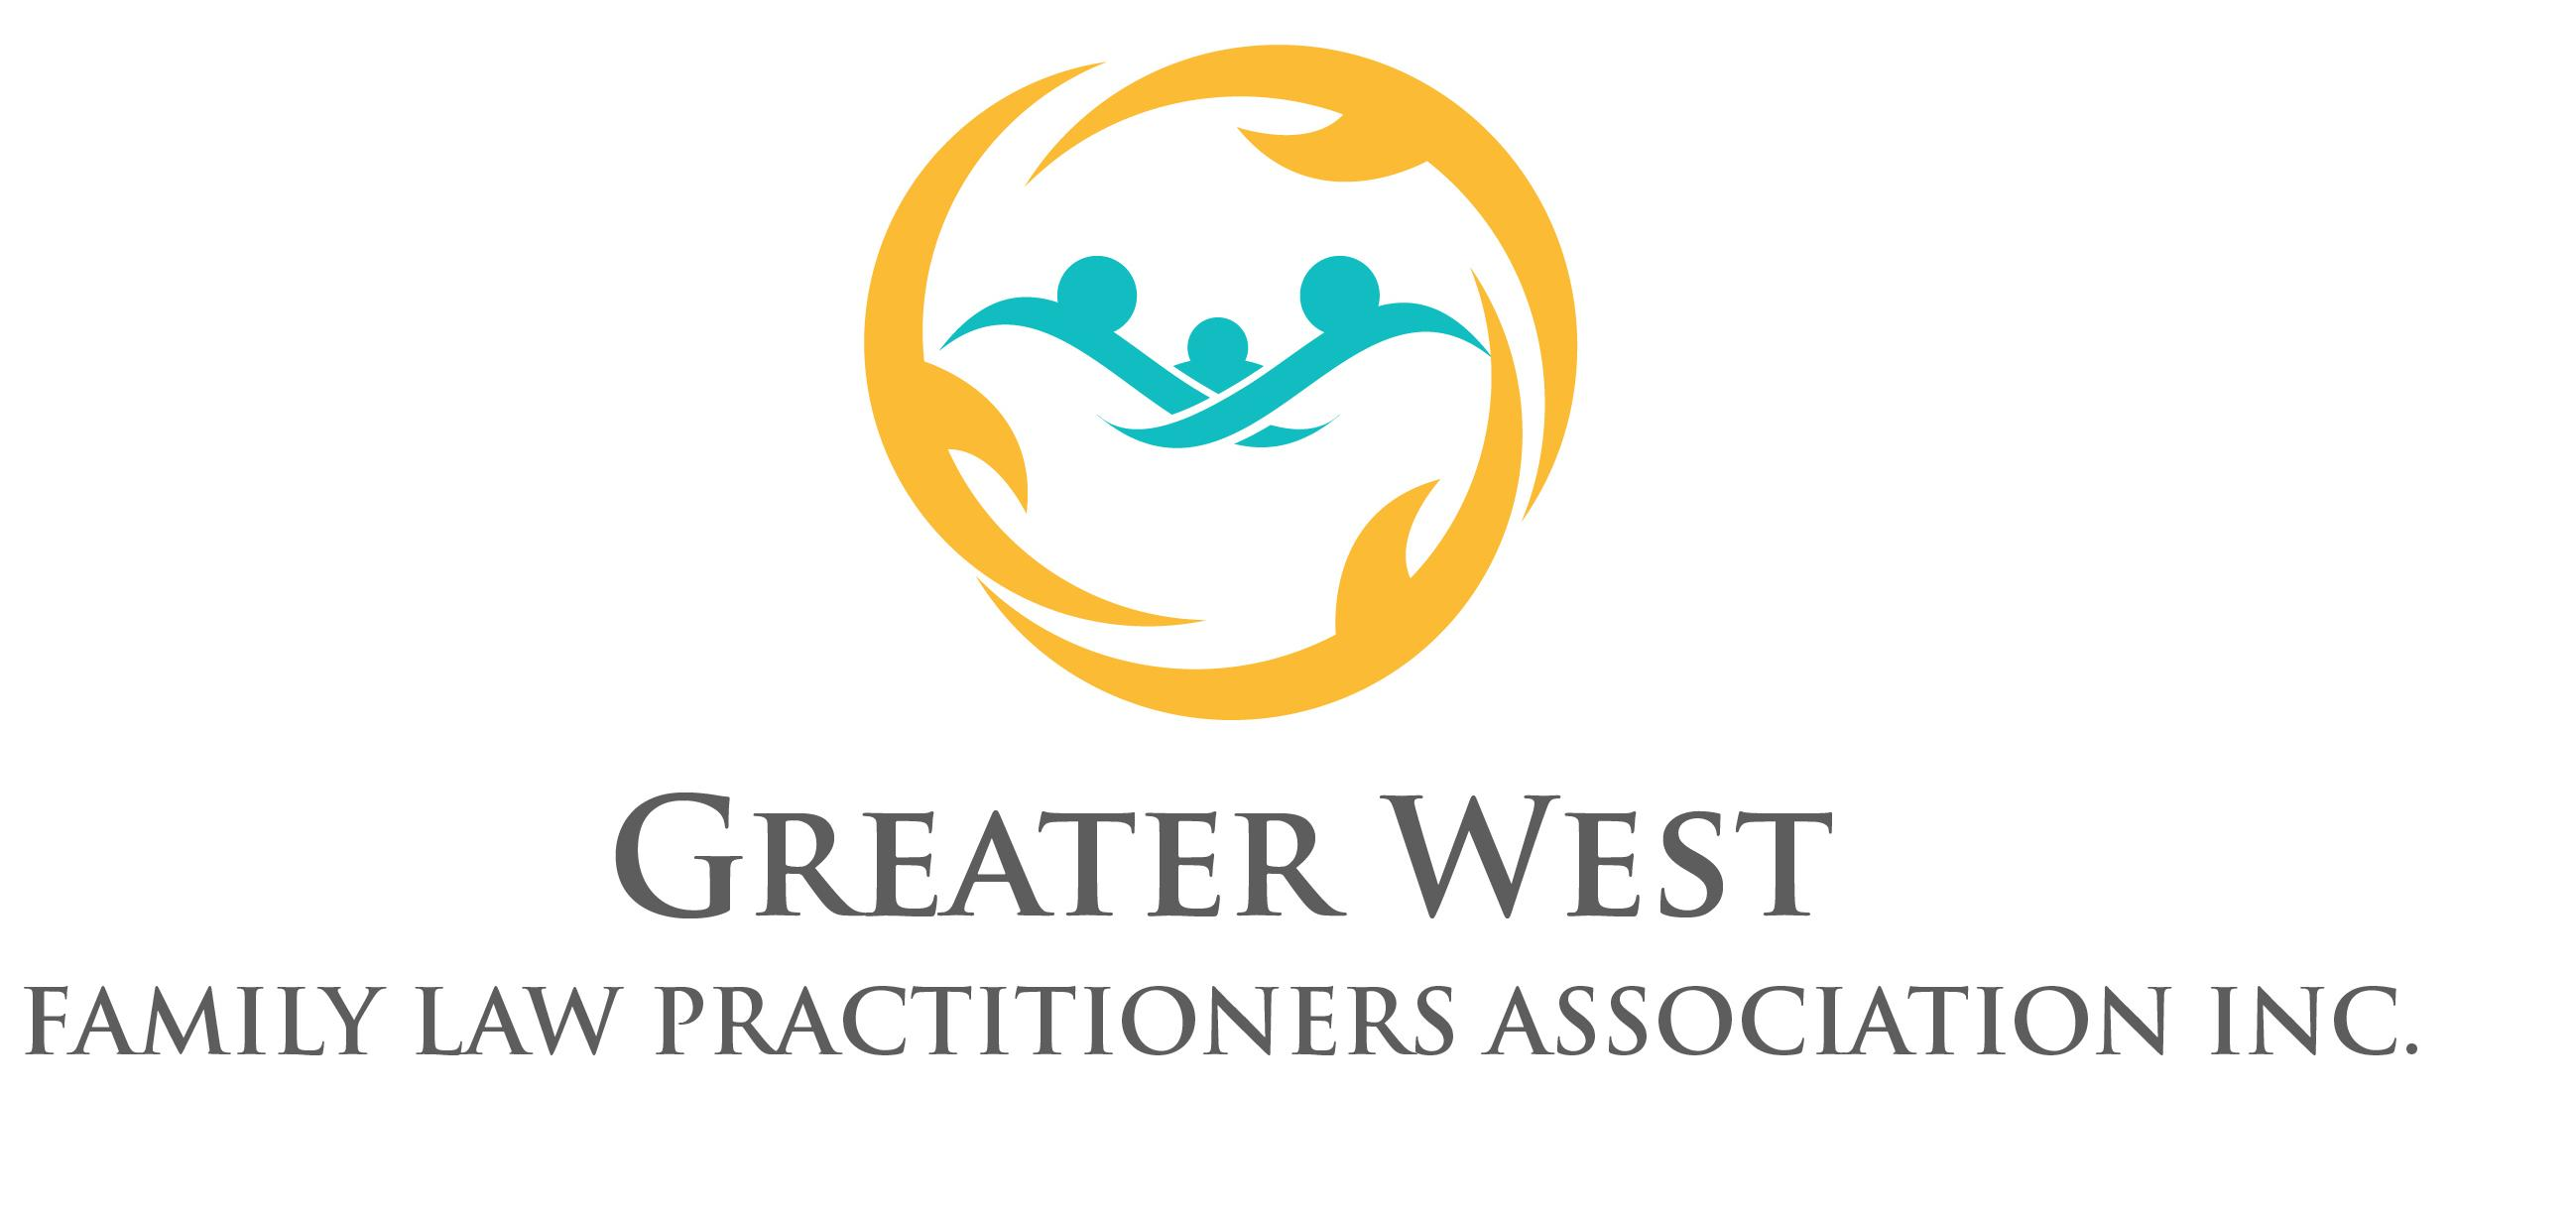 Greater West Family Law Practitioners Association